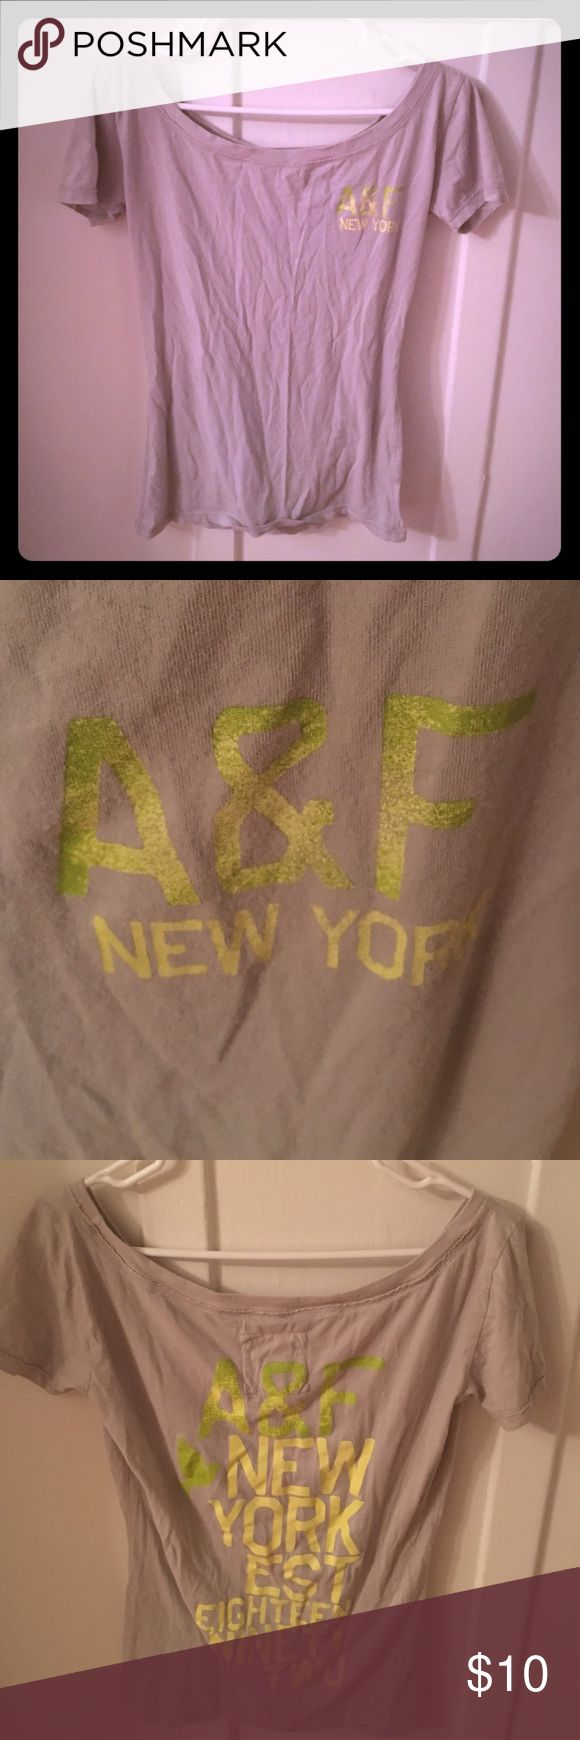 Abercrombie & Fitch shirt! Super cute. And soft! Cute, casual tshirt. Abercrombie and Fitch. Make me offers. Abercrombie & Fitch Tops Tees - Short Sleeve